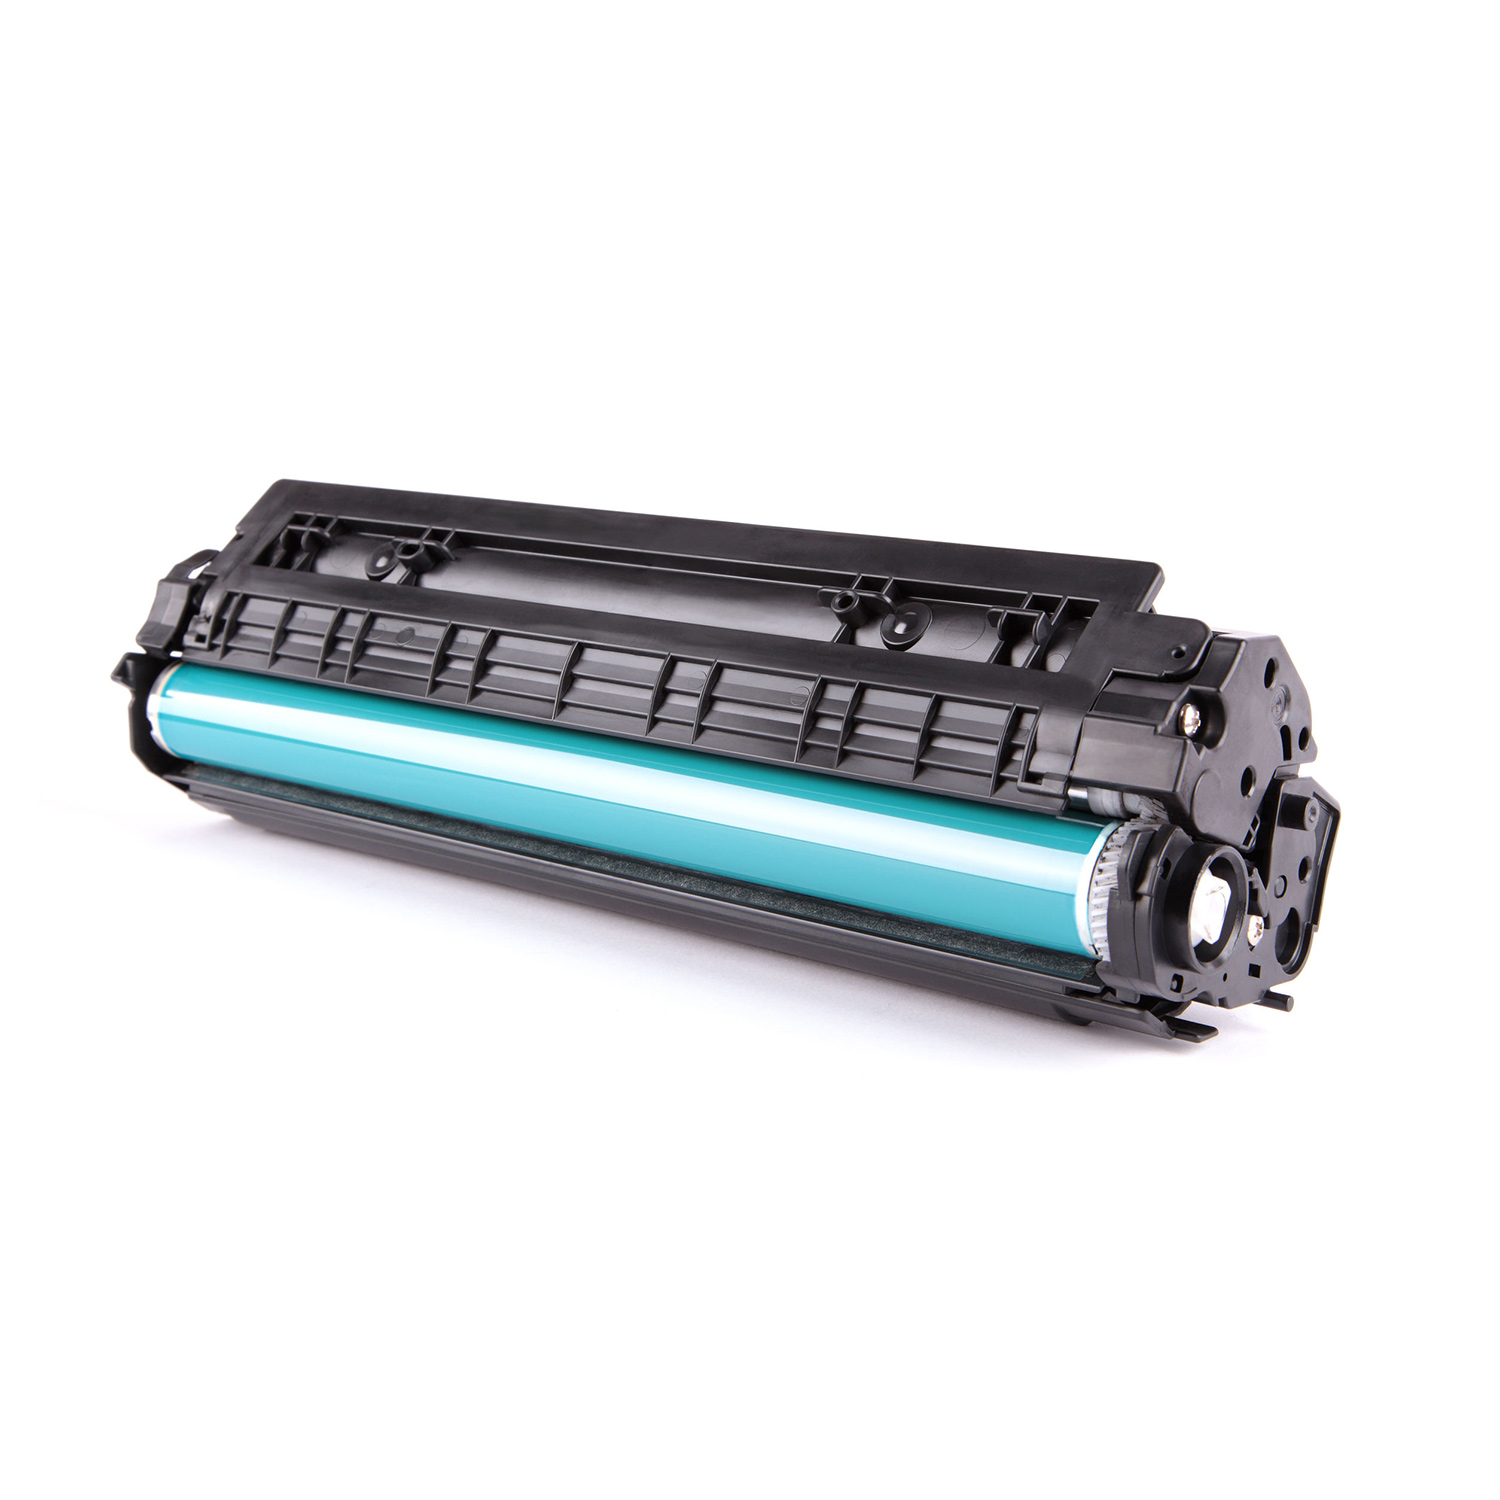 Compatible TK-5280C Cyan for Kyoecera ECOSYS P6235/ Μ6235/ Μ6635